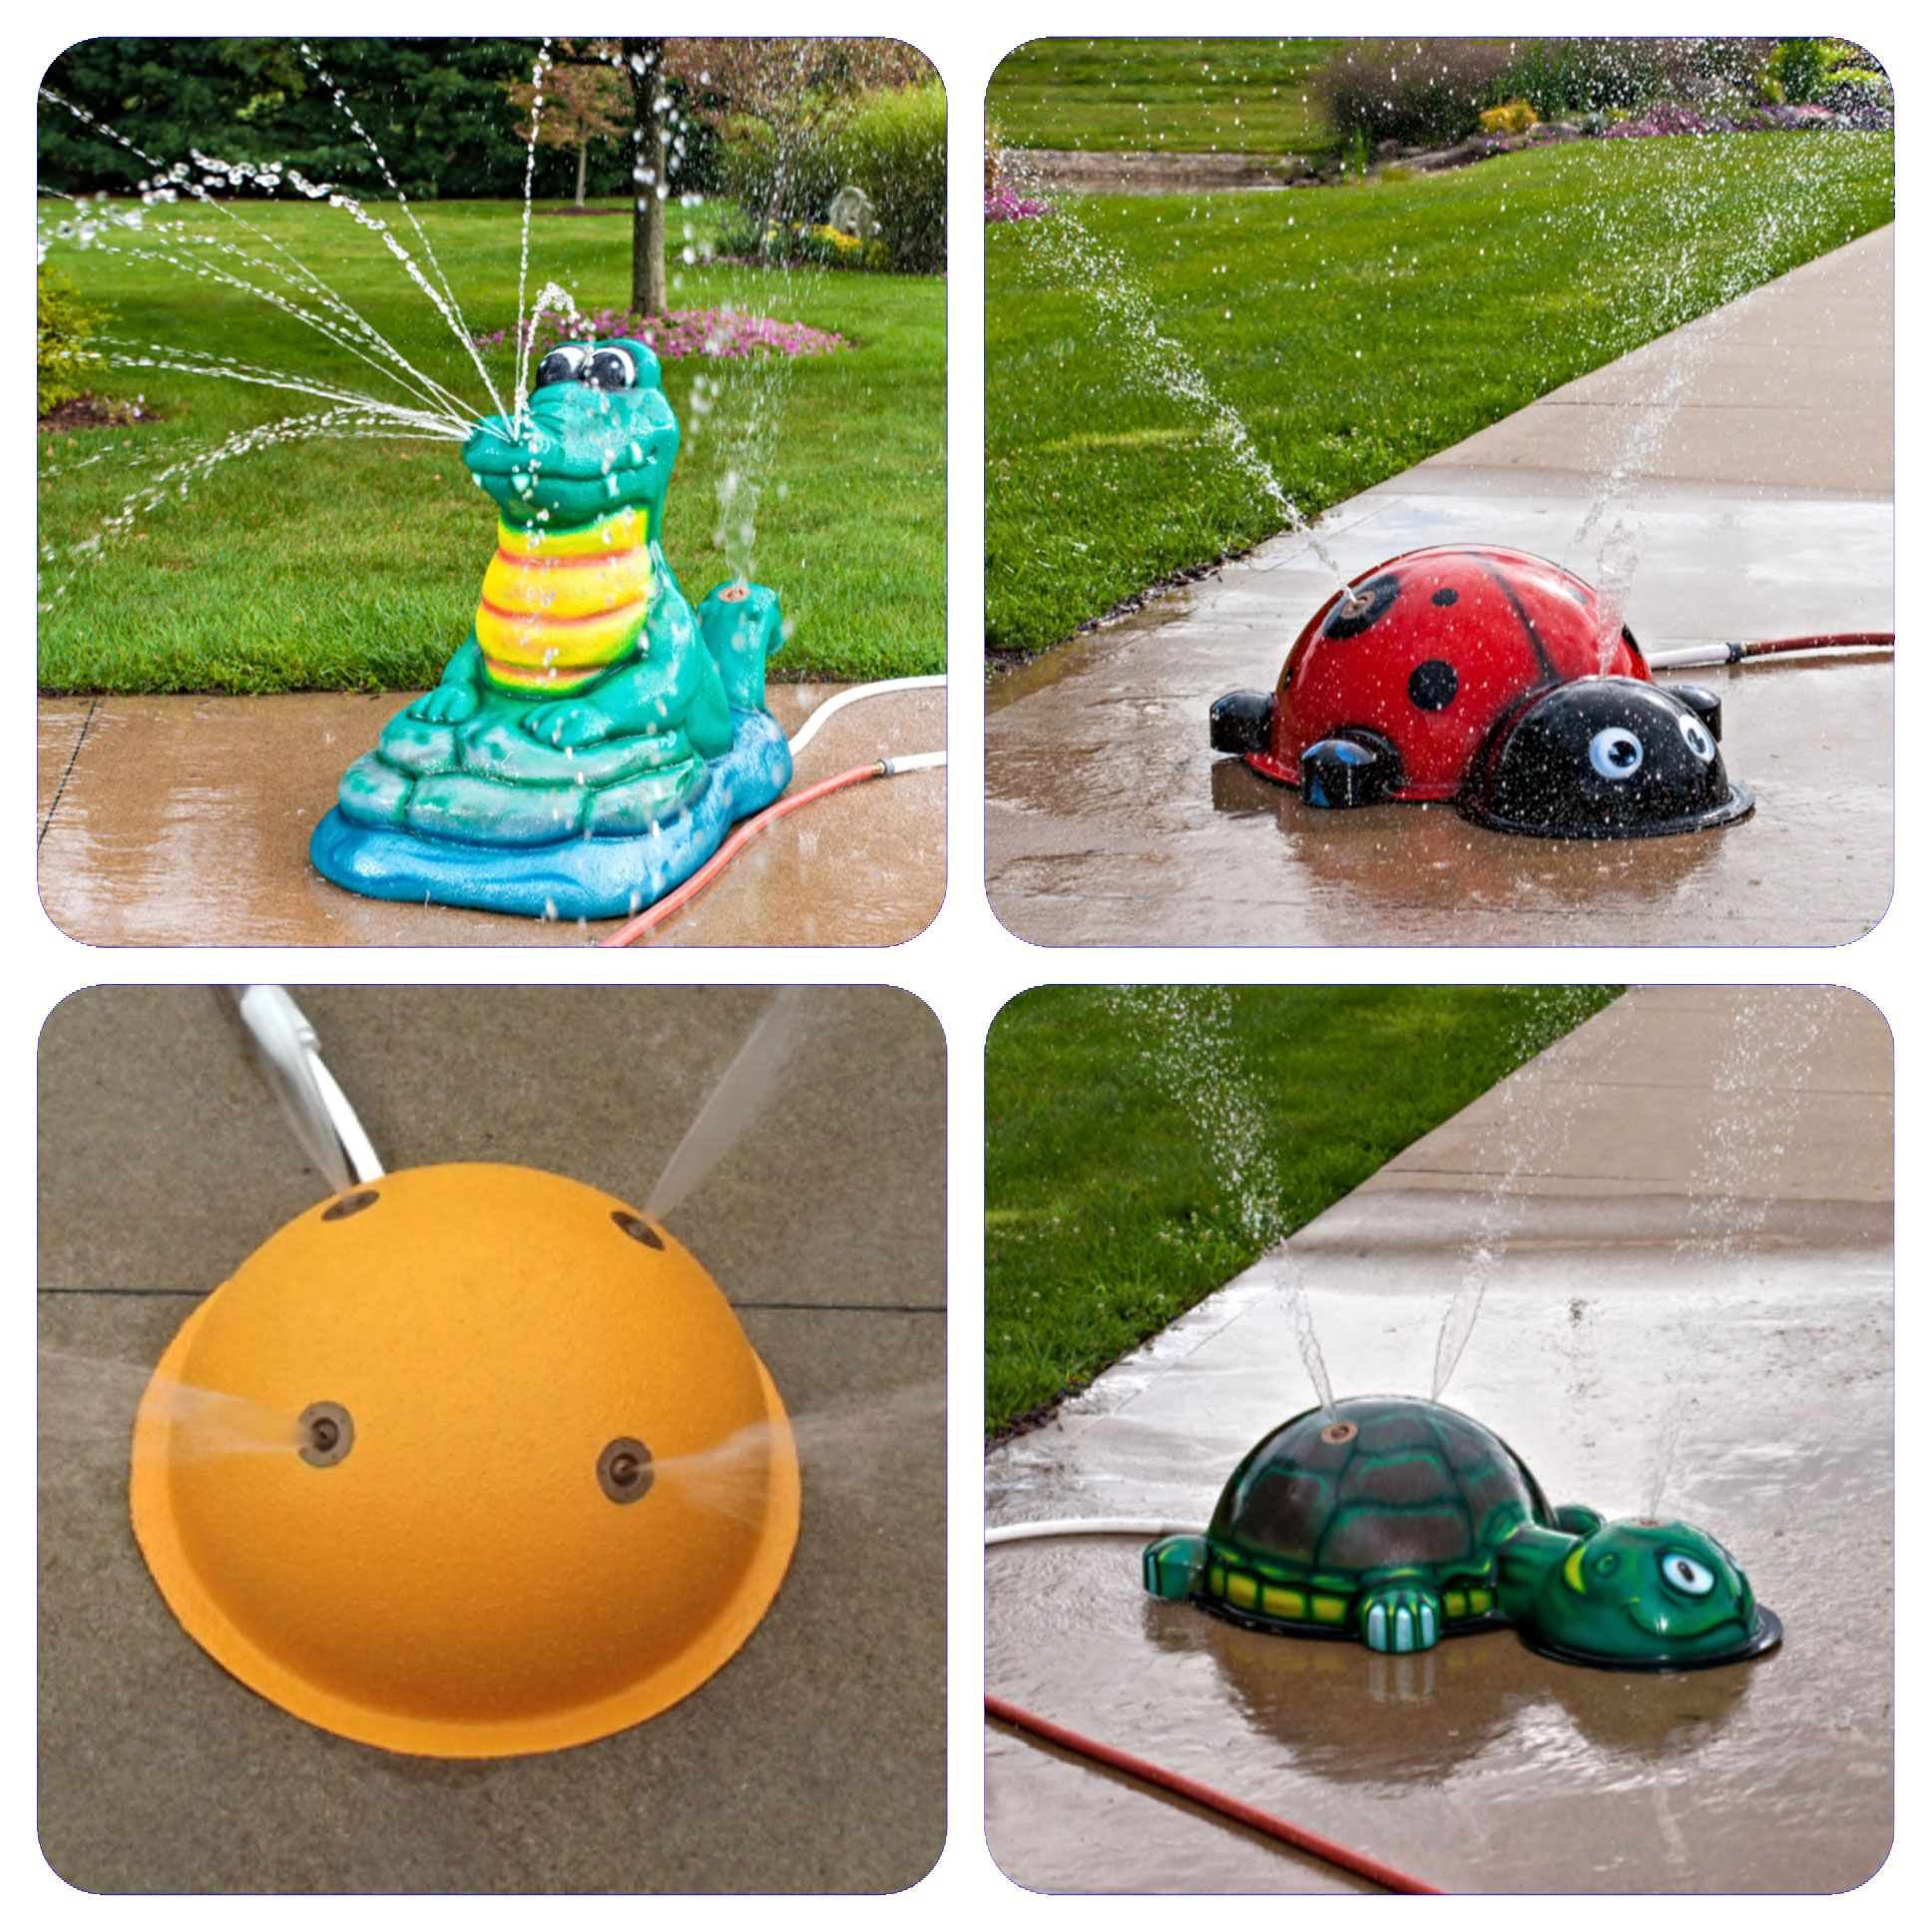 New For The Rental Industry   A Portable Splash Pad And More!